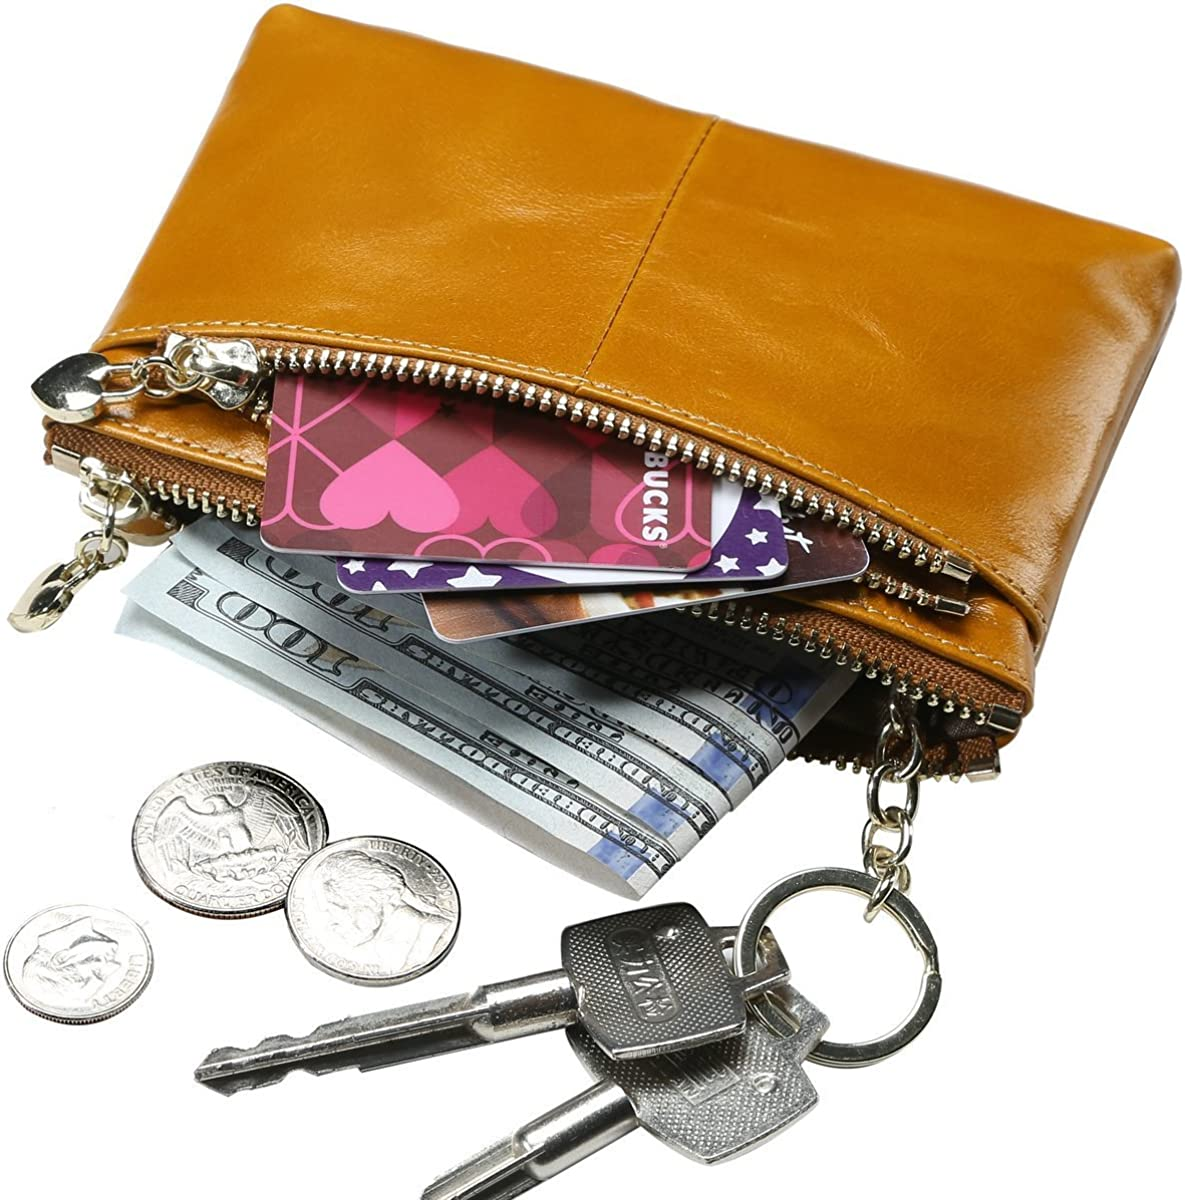 Sueway Genuine Leather Coin Purse Pouch Change Credit Card Holder Zipper Wallet with Key Chain Mini Size